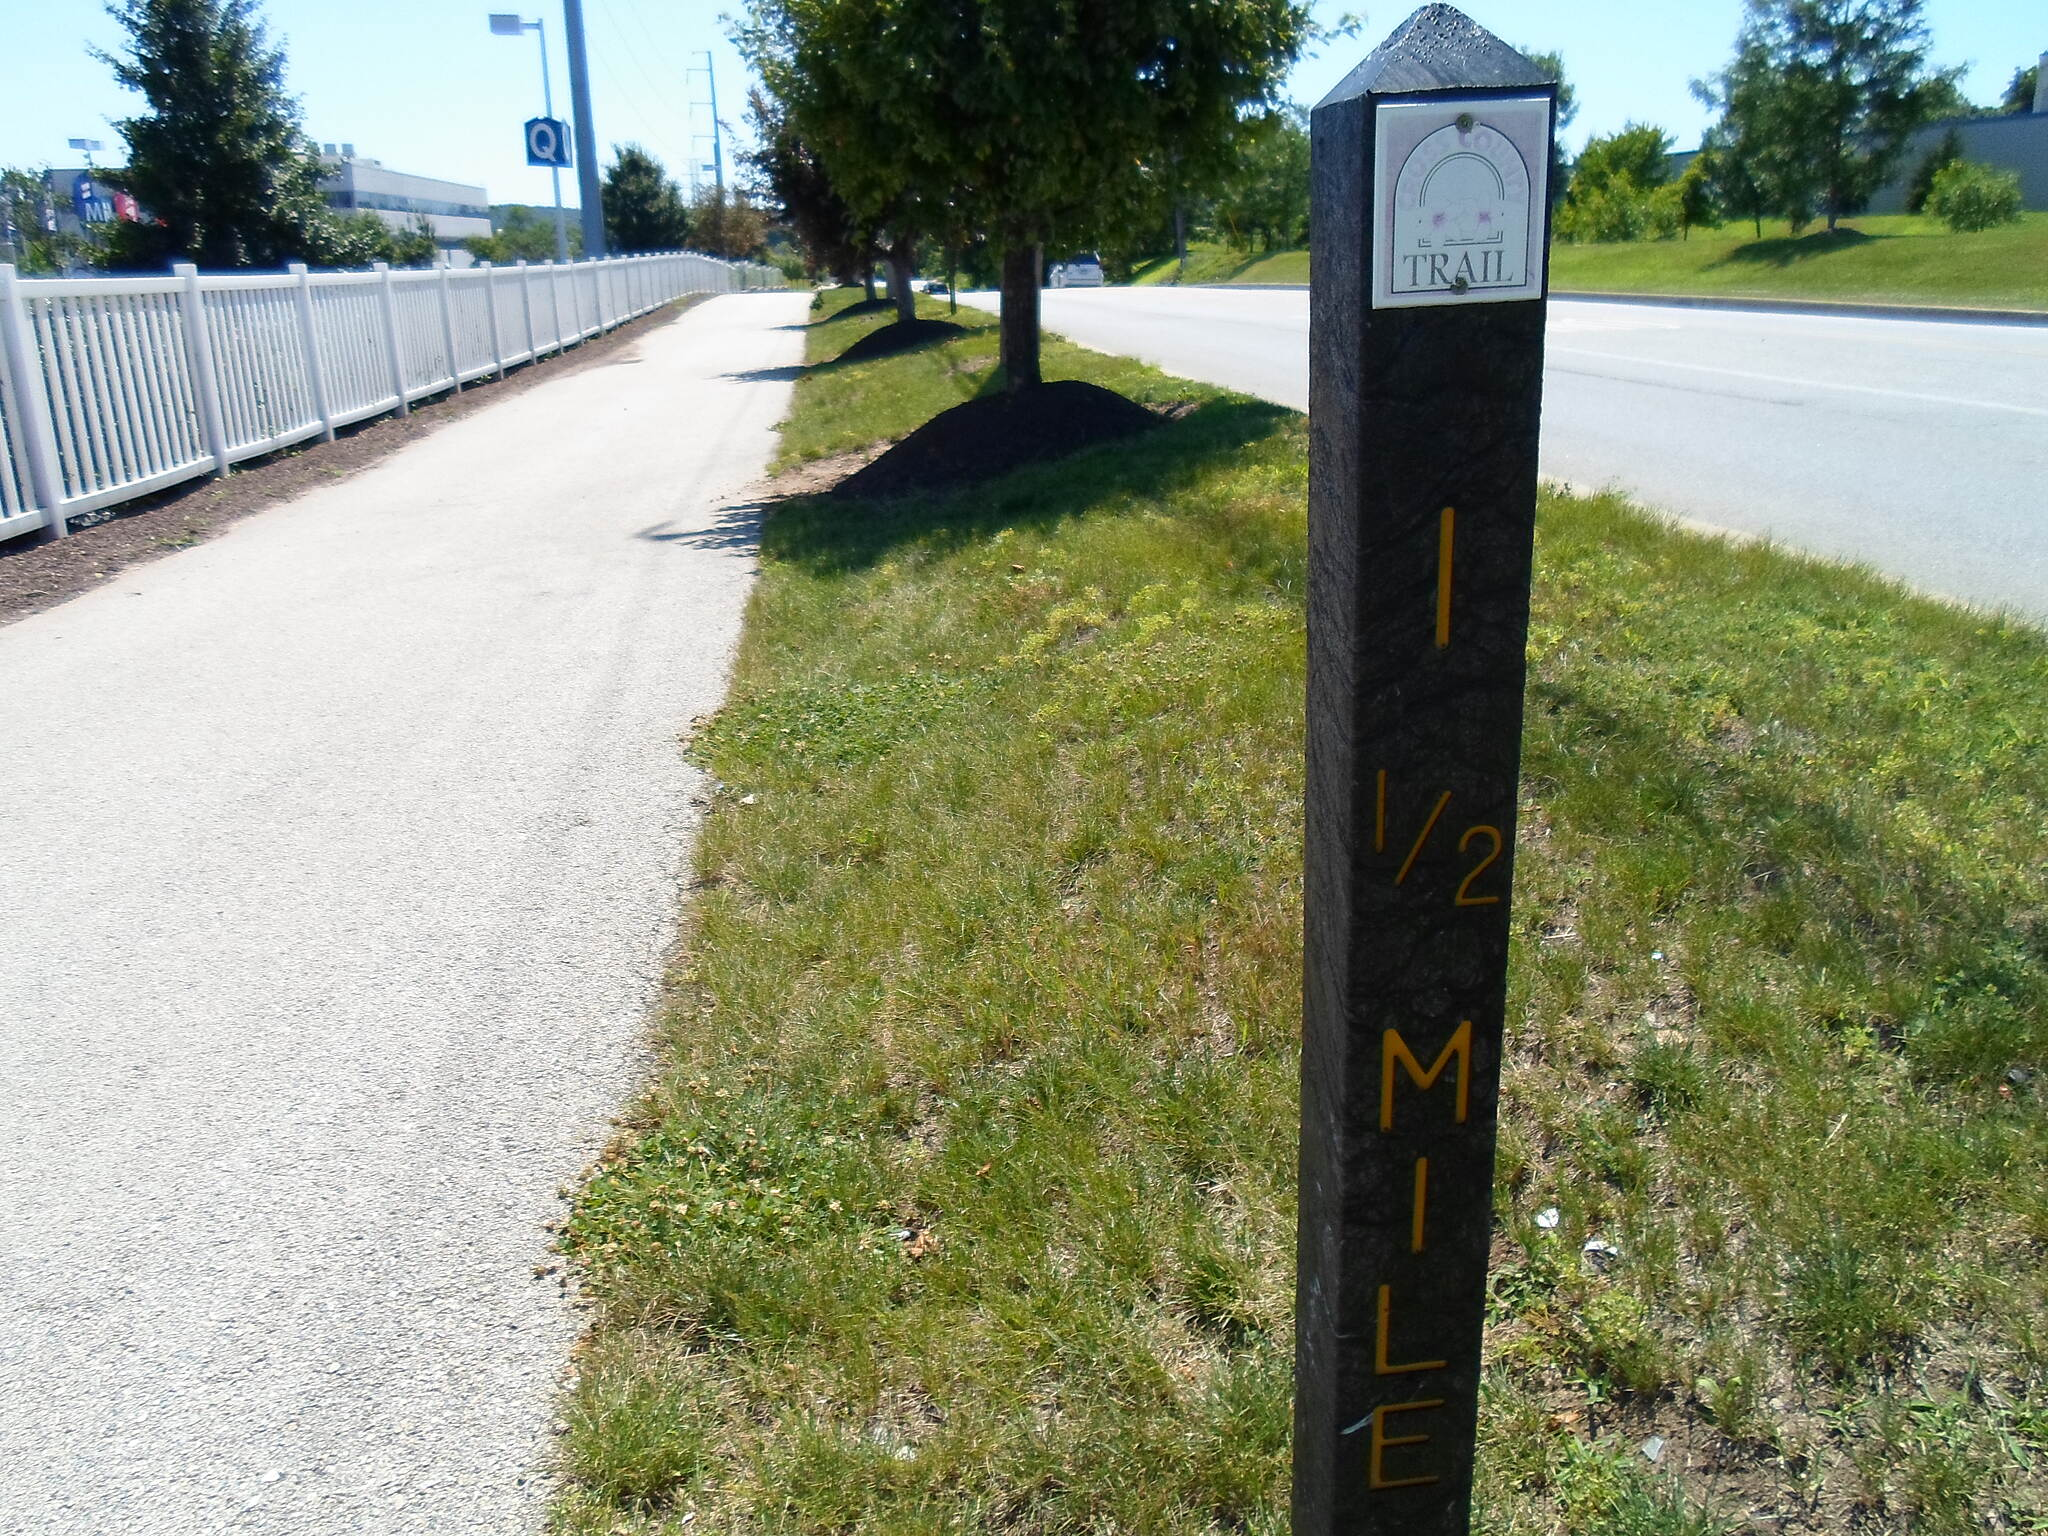 Cross County Trail (PA) Cross County Trail Mile marker near IKEA. Taken July 2014.